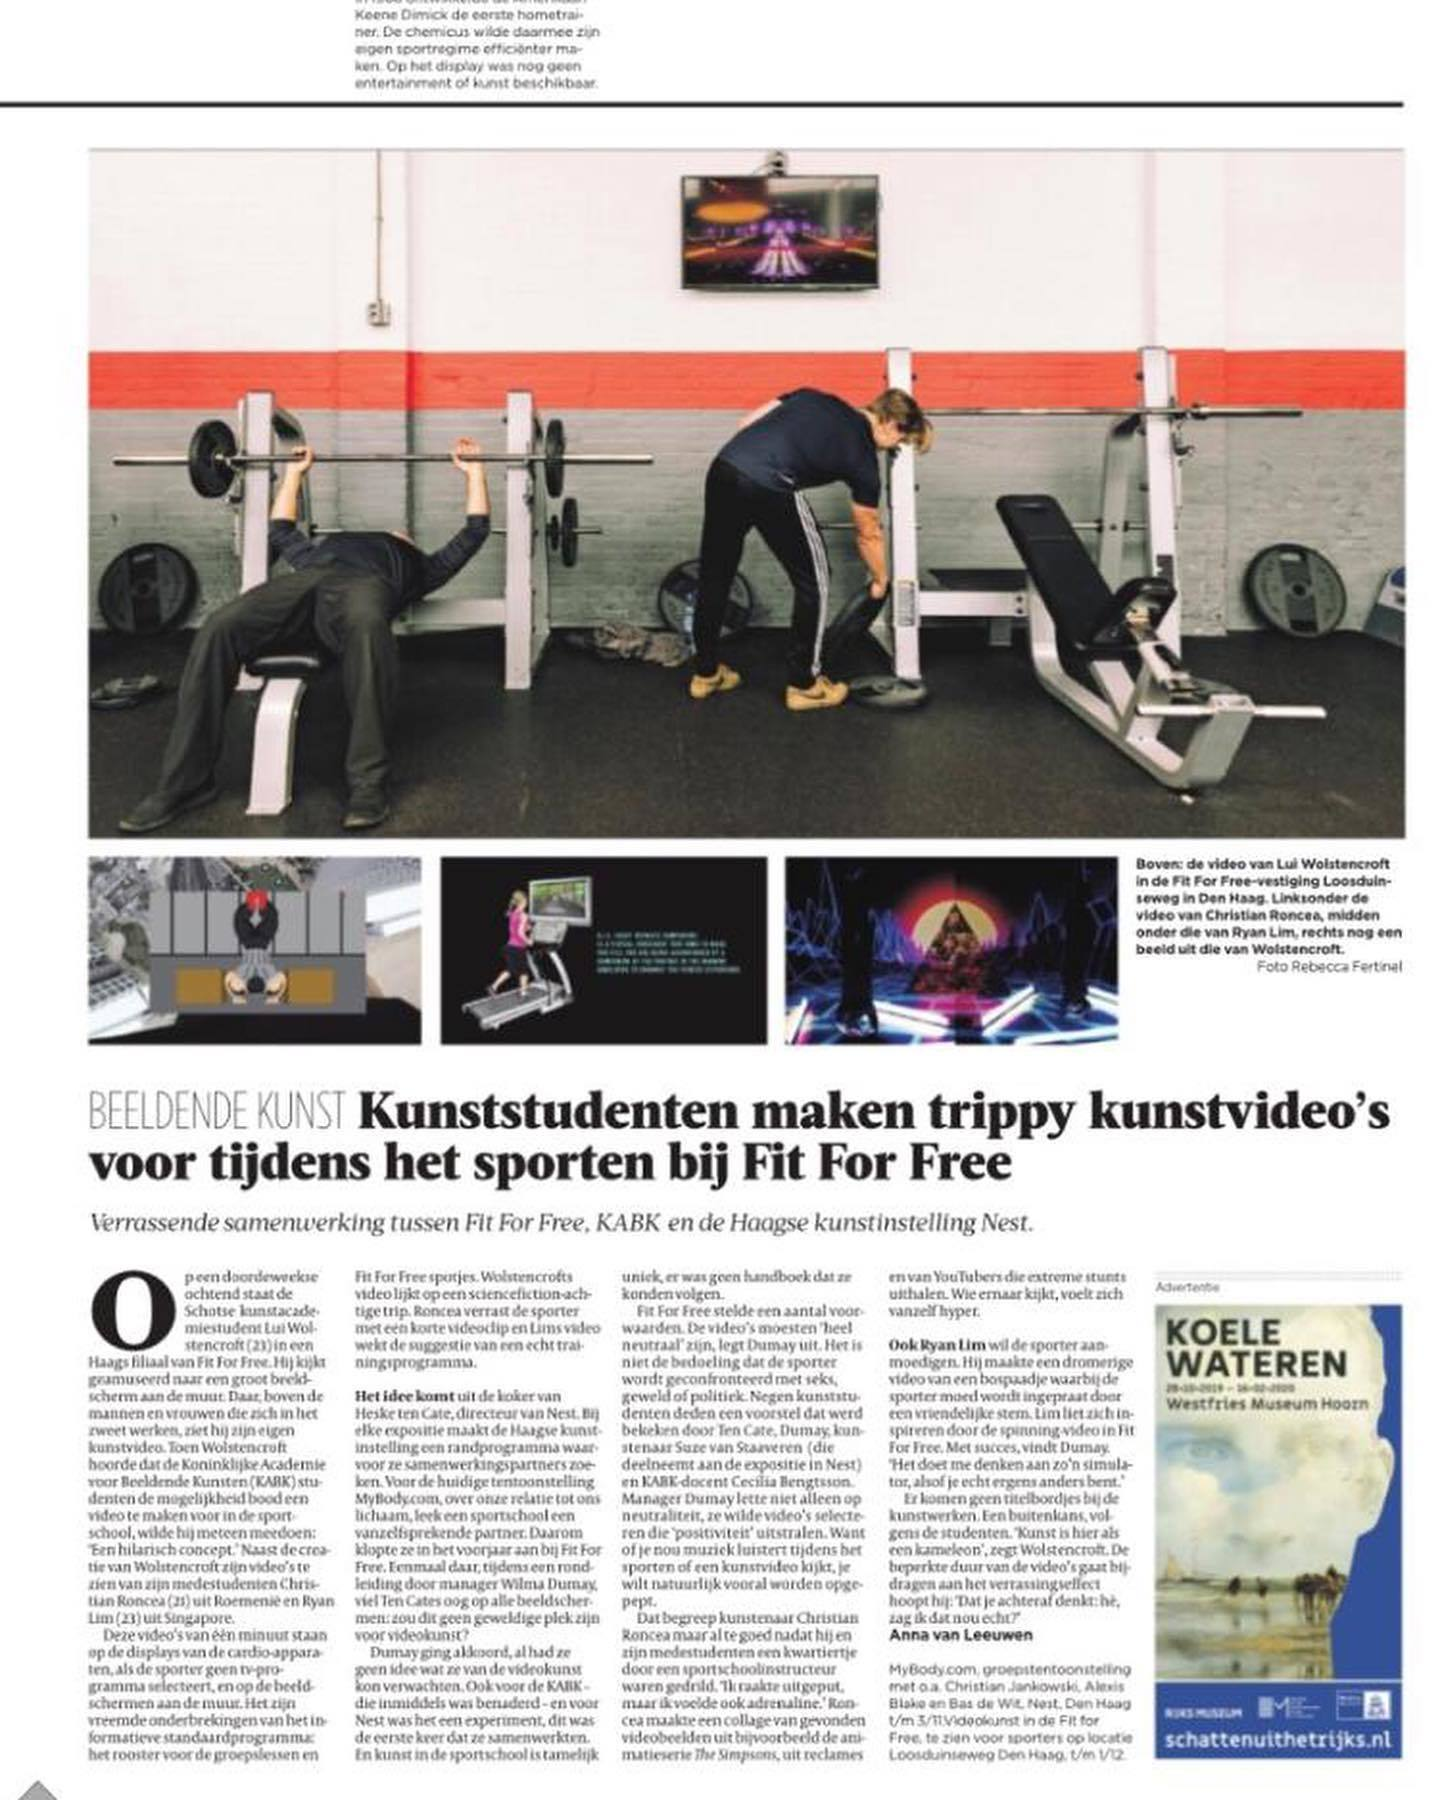 Artikel in de Volkskrant over KABK-studenten